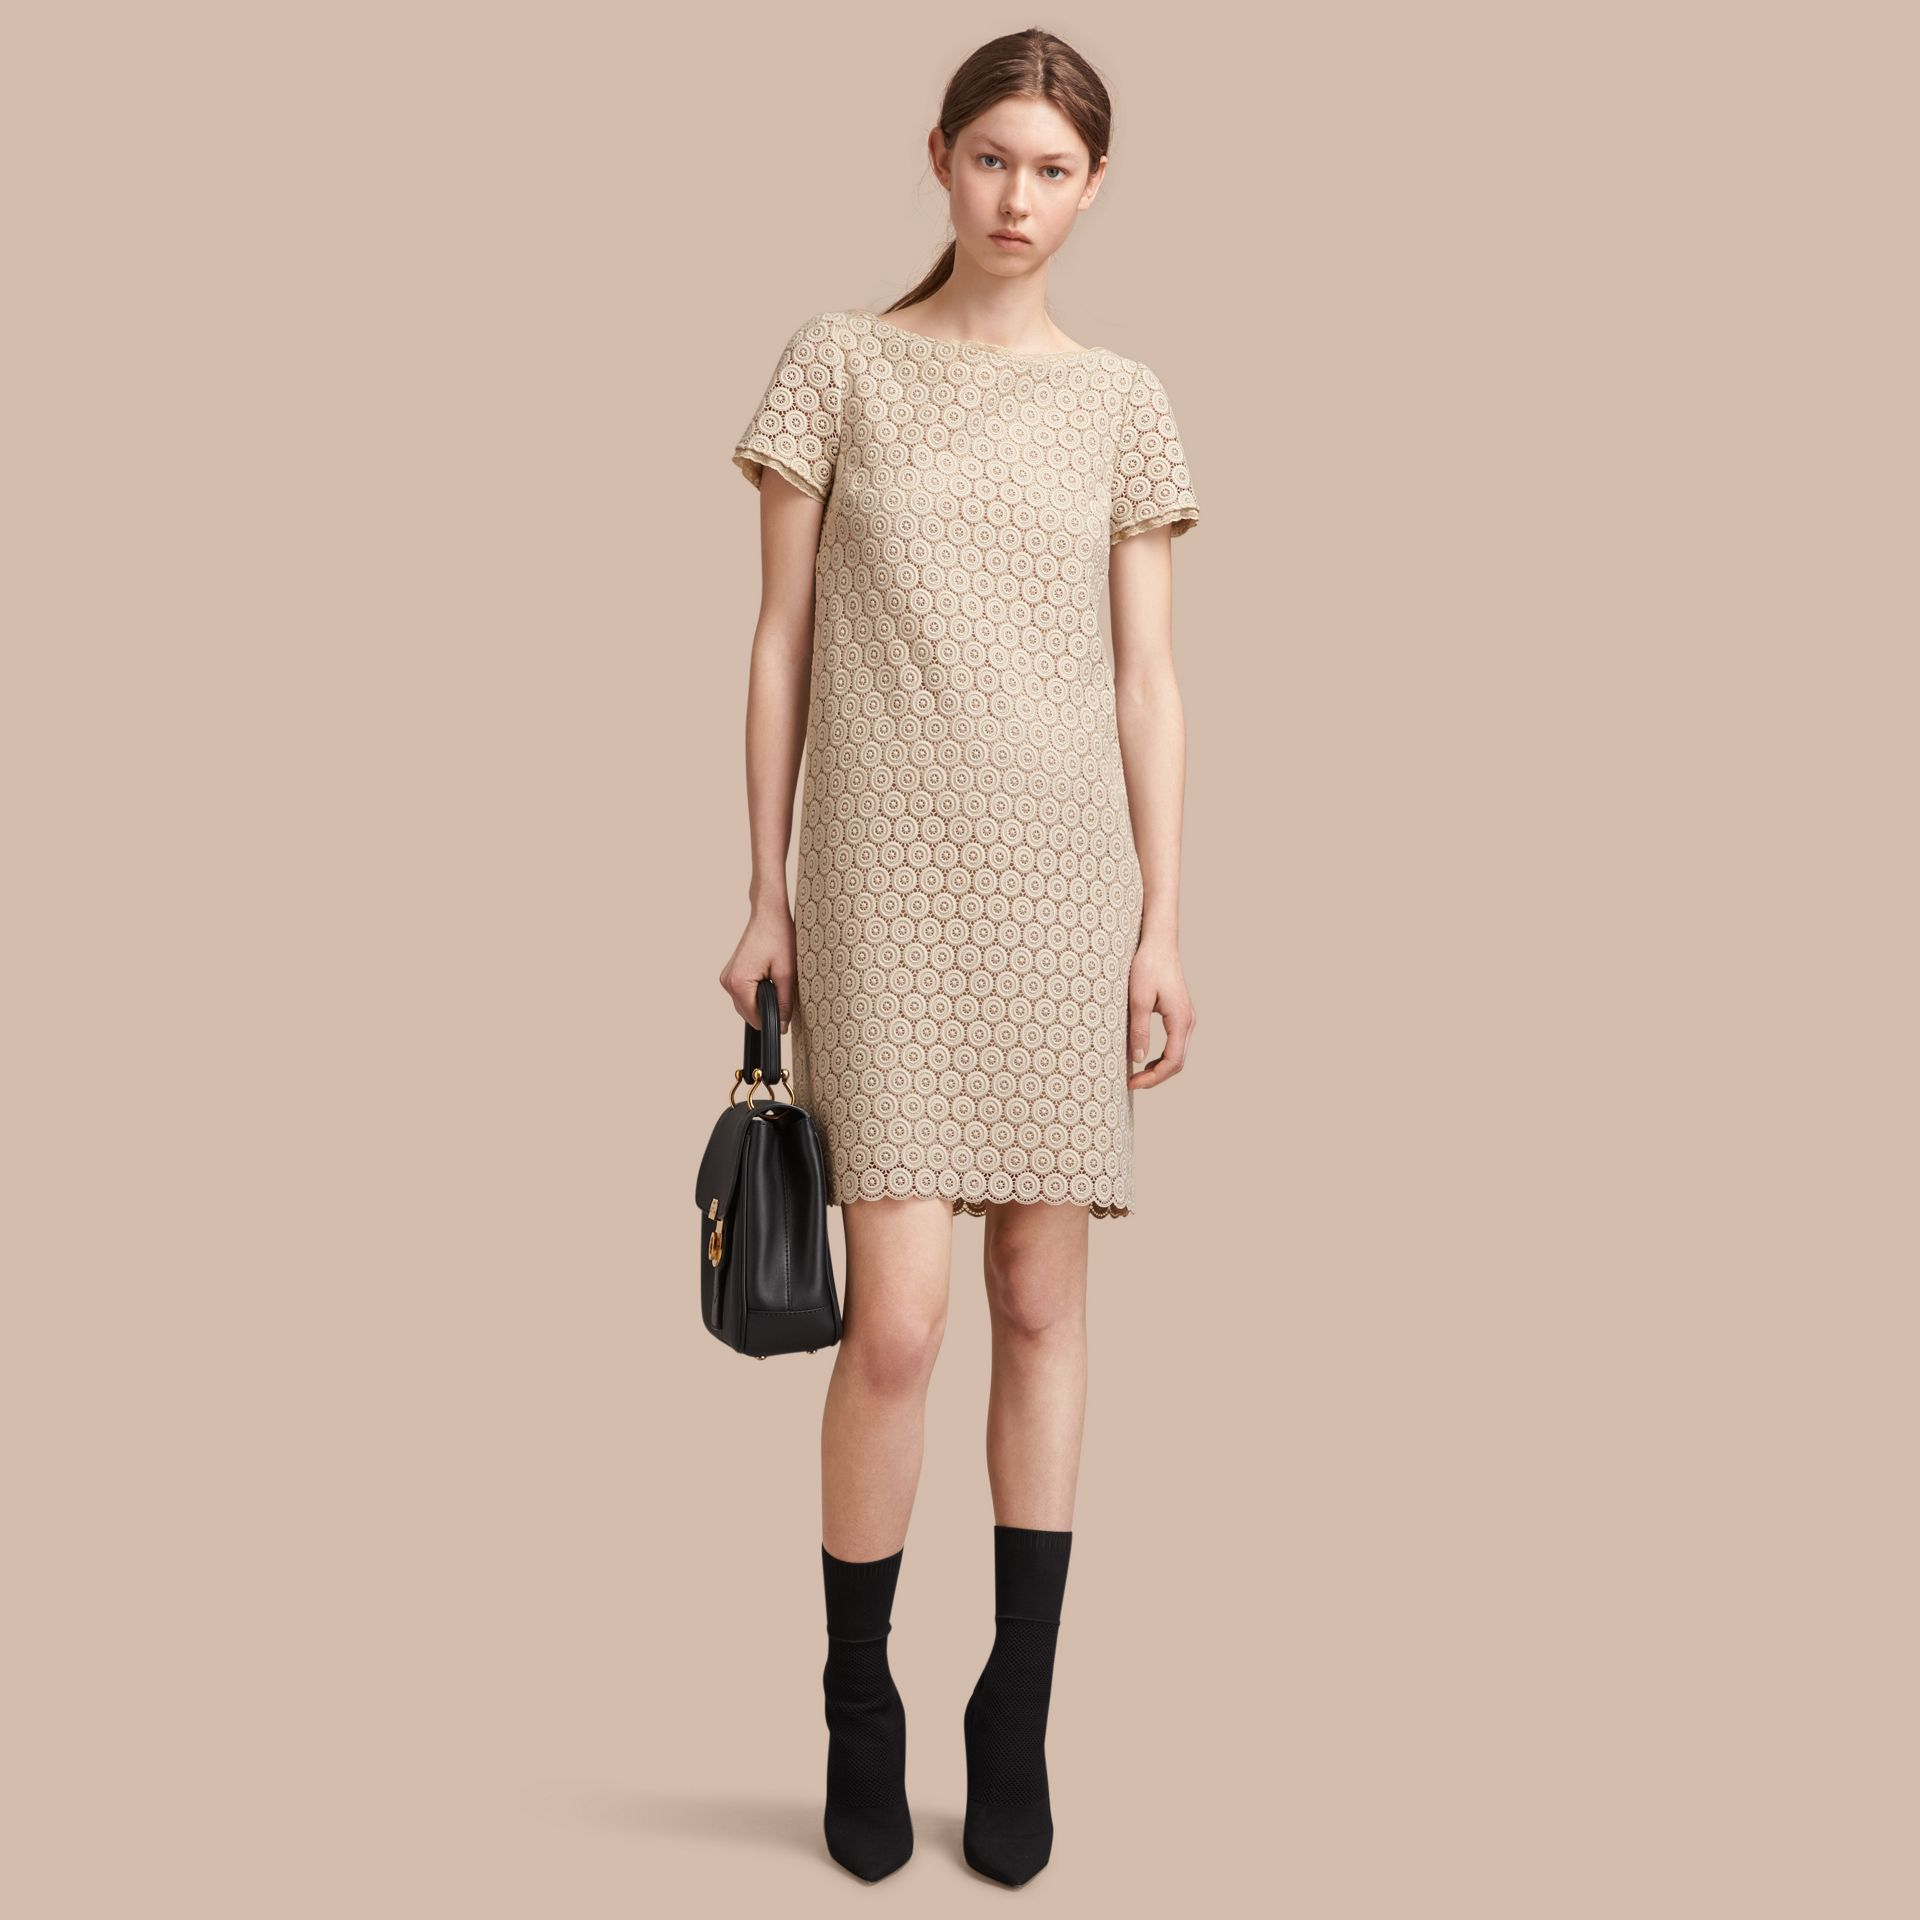 Short-sleeve Geometric Lace Dress in Stone - Women | Burberry Canada - gallery image 1